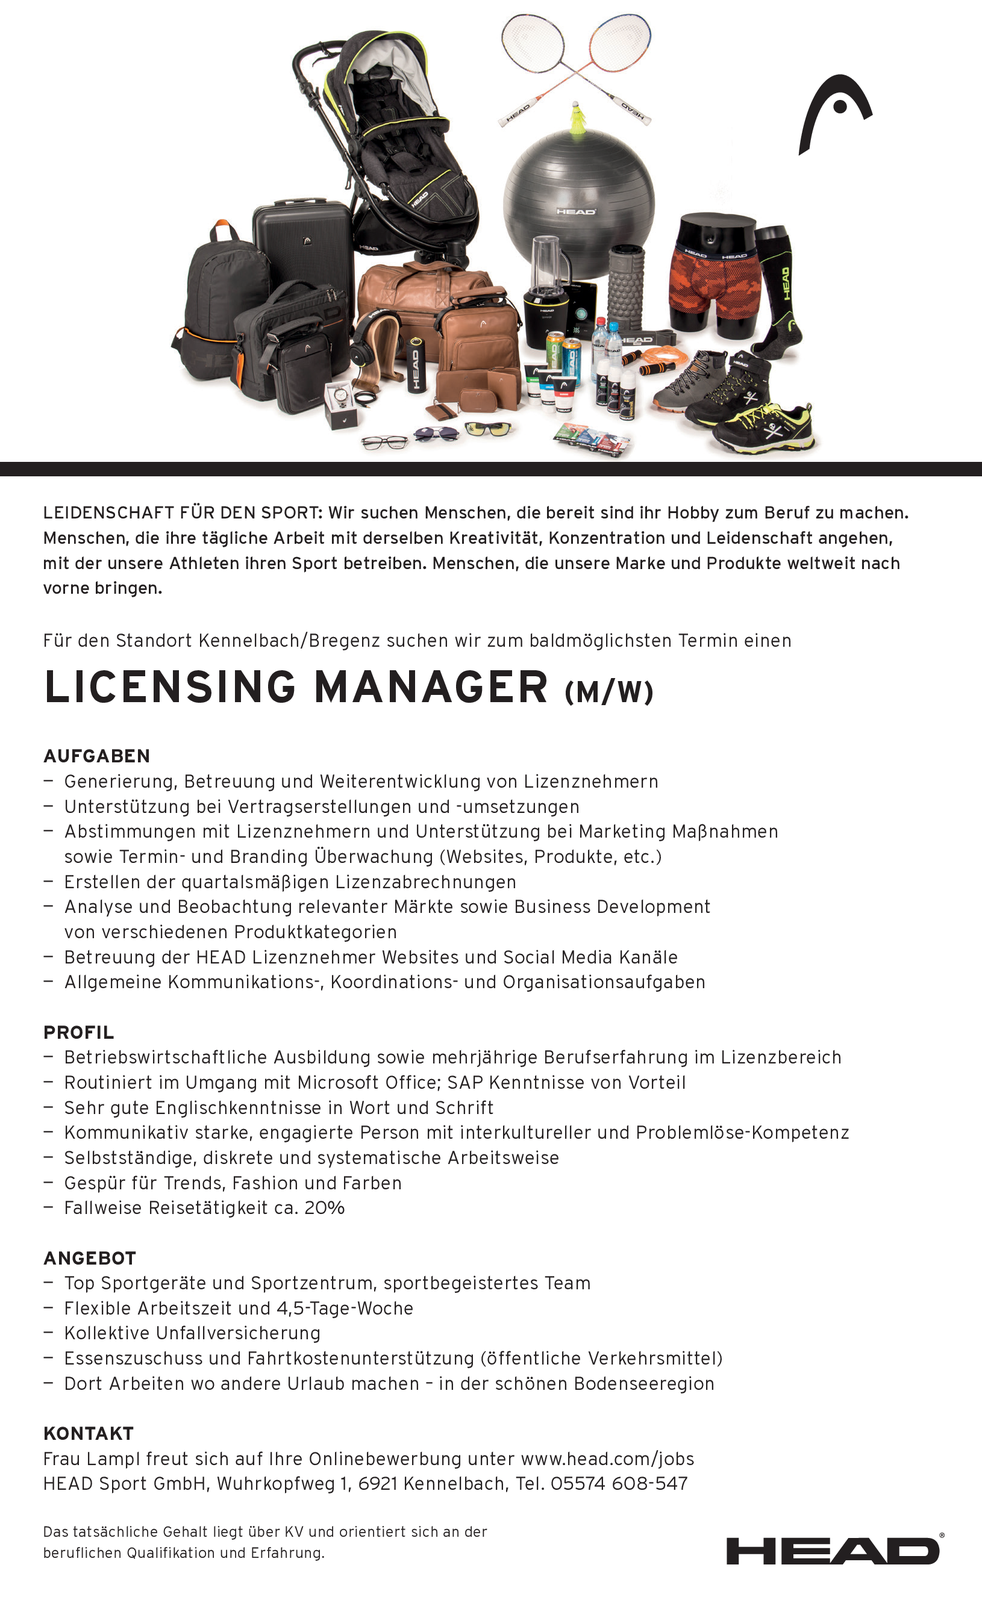 LICENSING MANAGER (M/W)